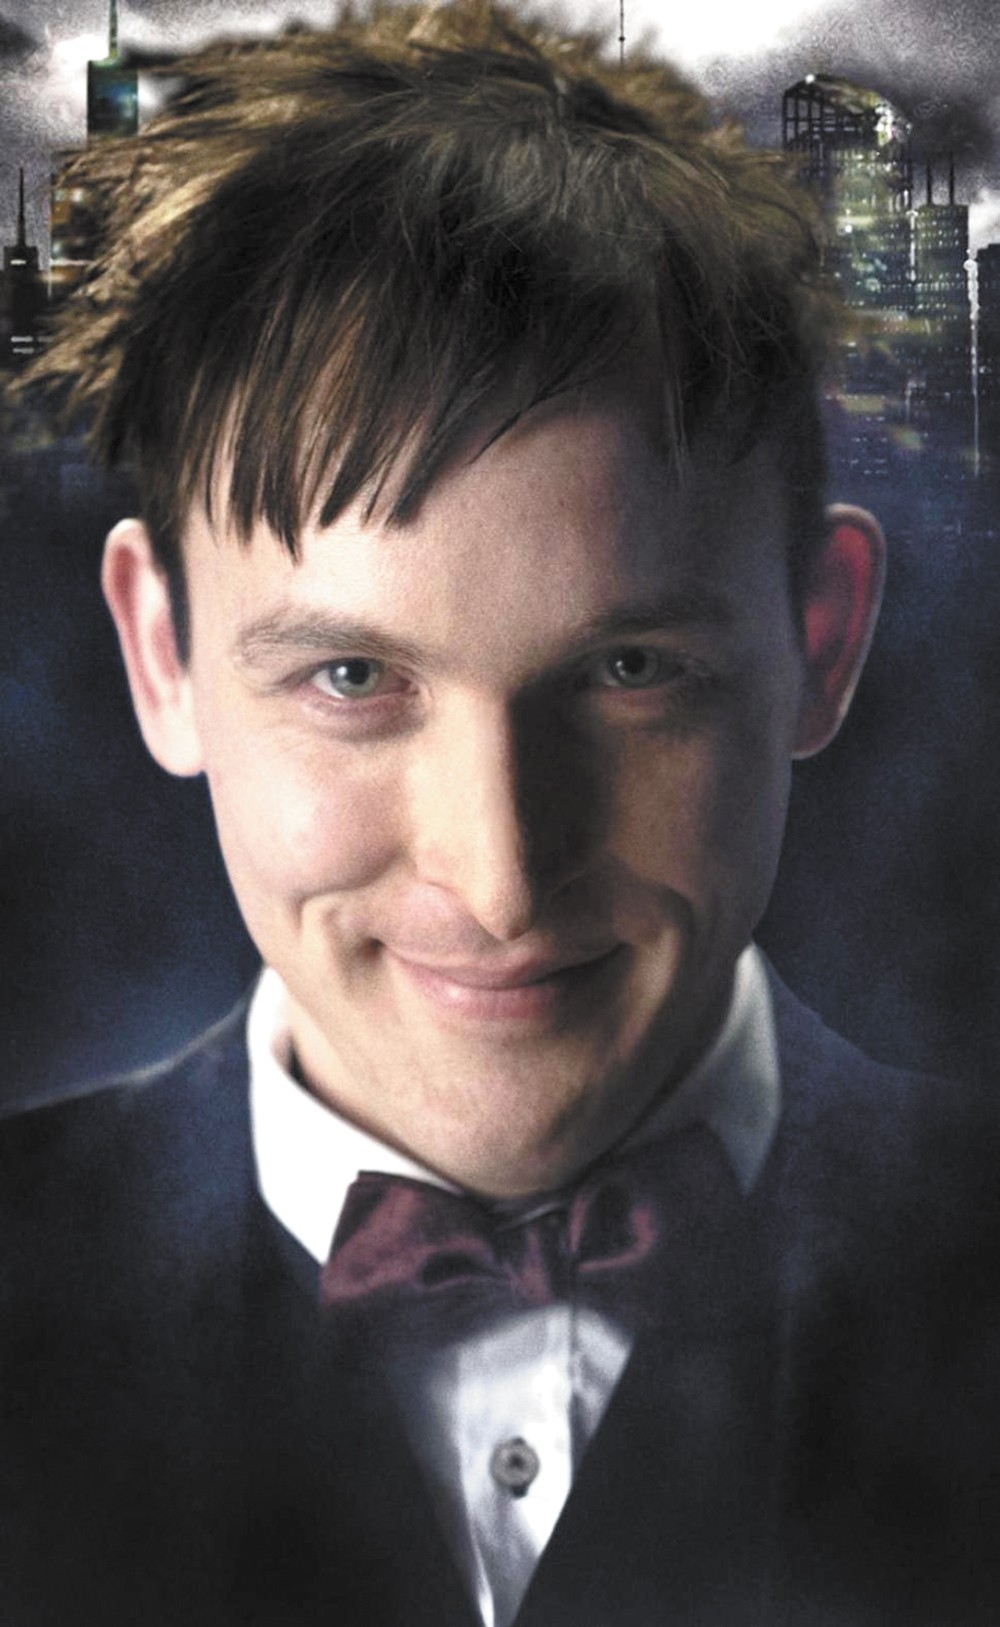 Oswald Cobblepot, the man who will become The Penguin.